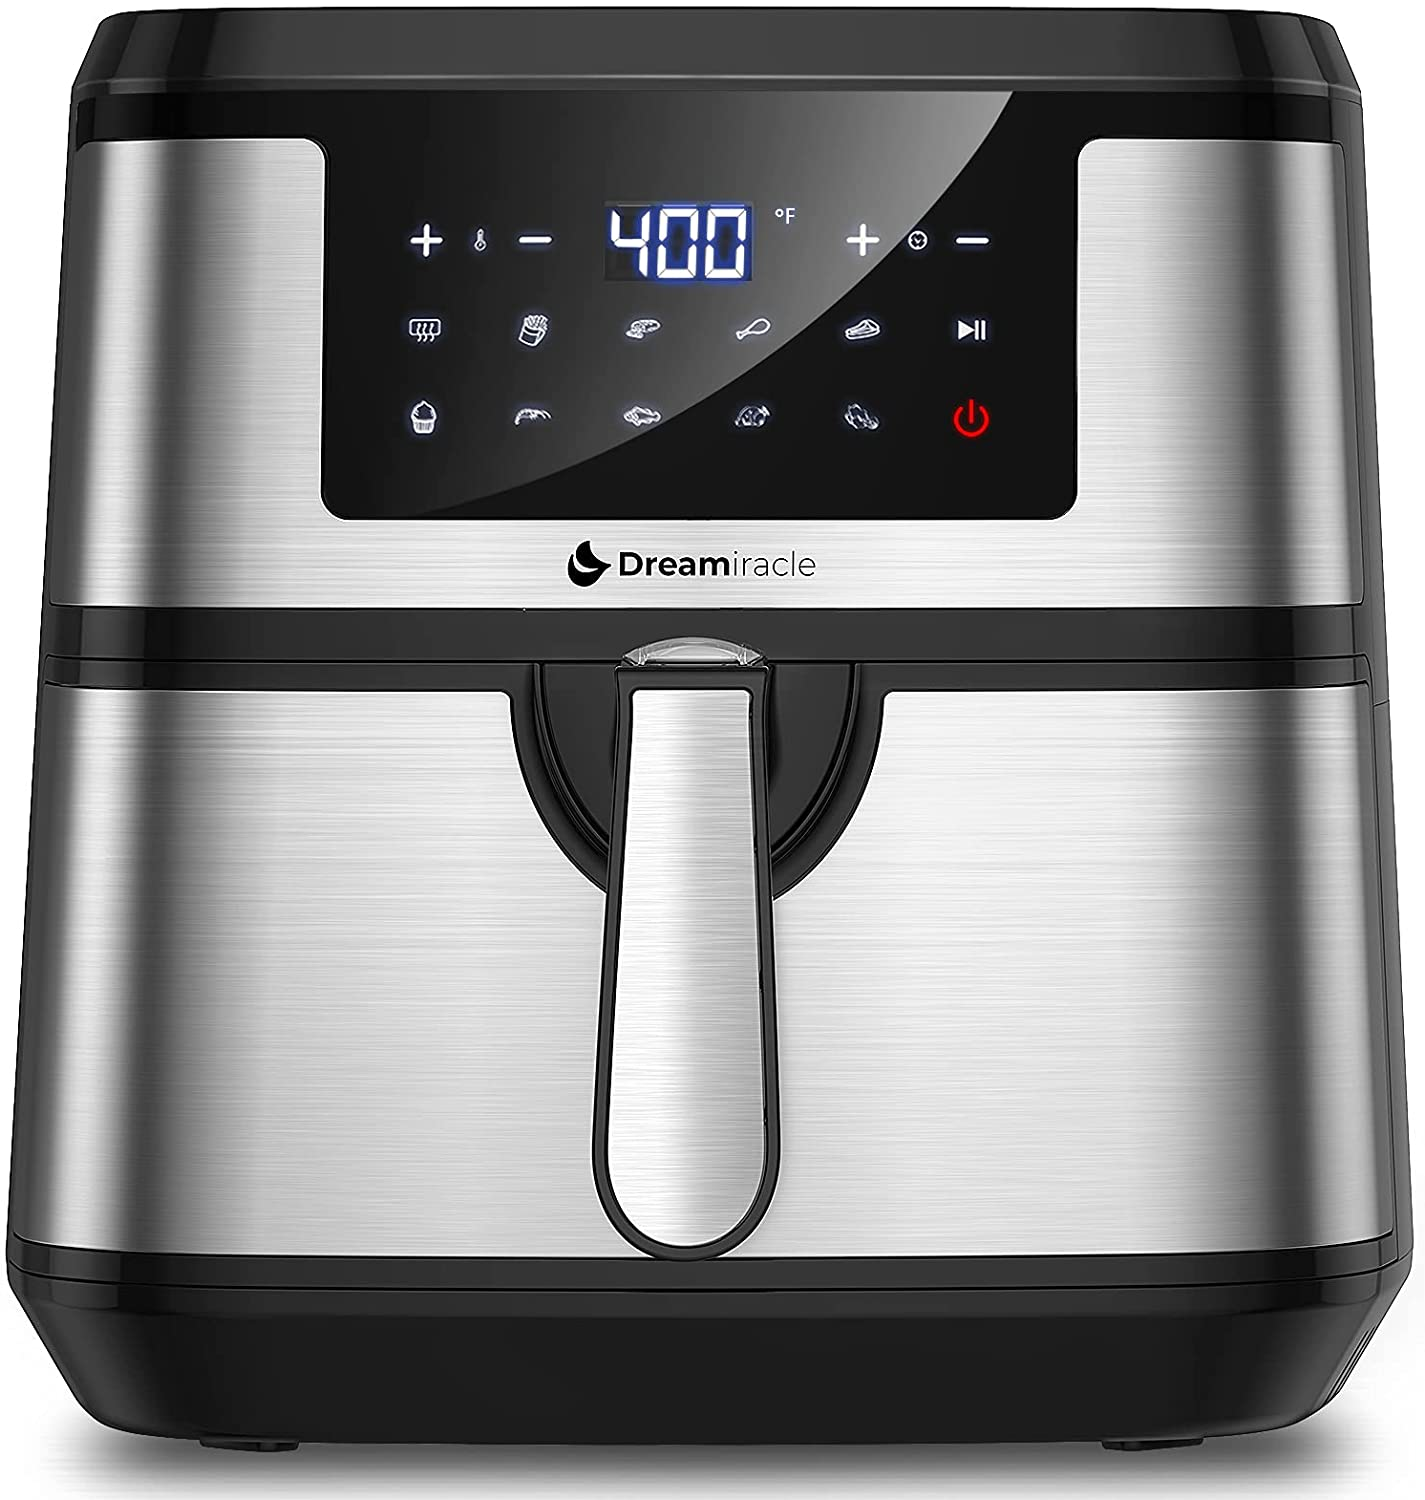 Air Fryer XL 8Qt, Dreamiracle Digital Airfryer 8 quart, 1750W Smart Air Fryer with 10 Presets One Touch LED Screen, Nonstick Detachable Basket, Preheat, Auto Shut Off, Rapid Frying